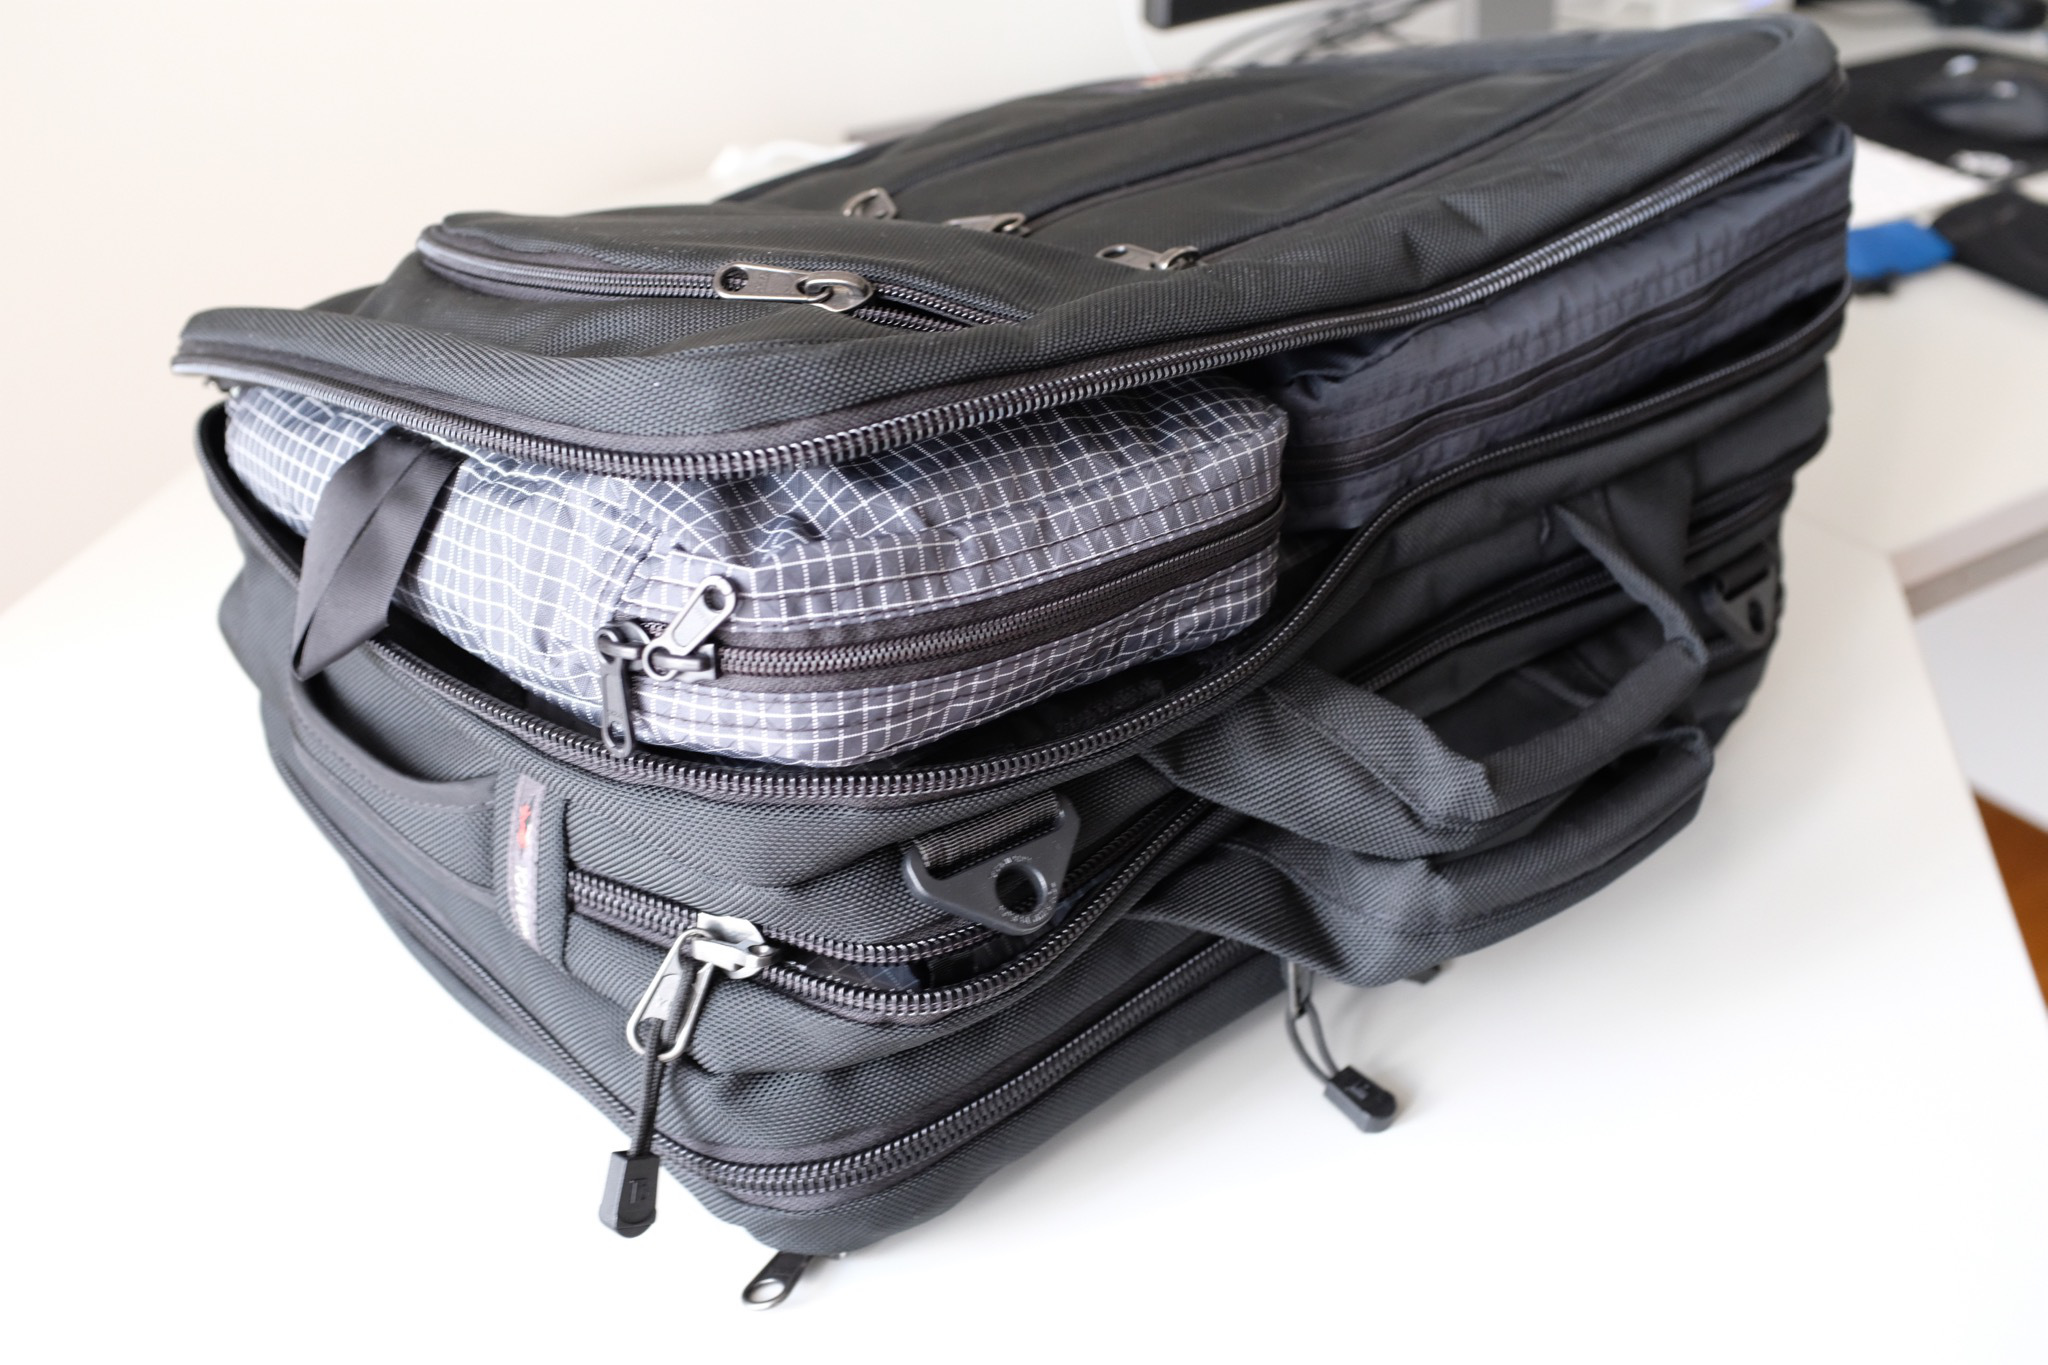 Packing cubes make it easy to pull out your items quickly